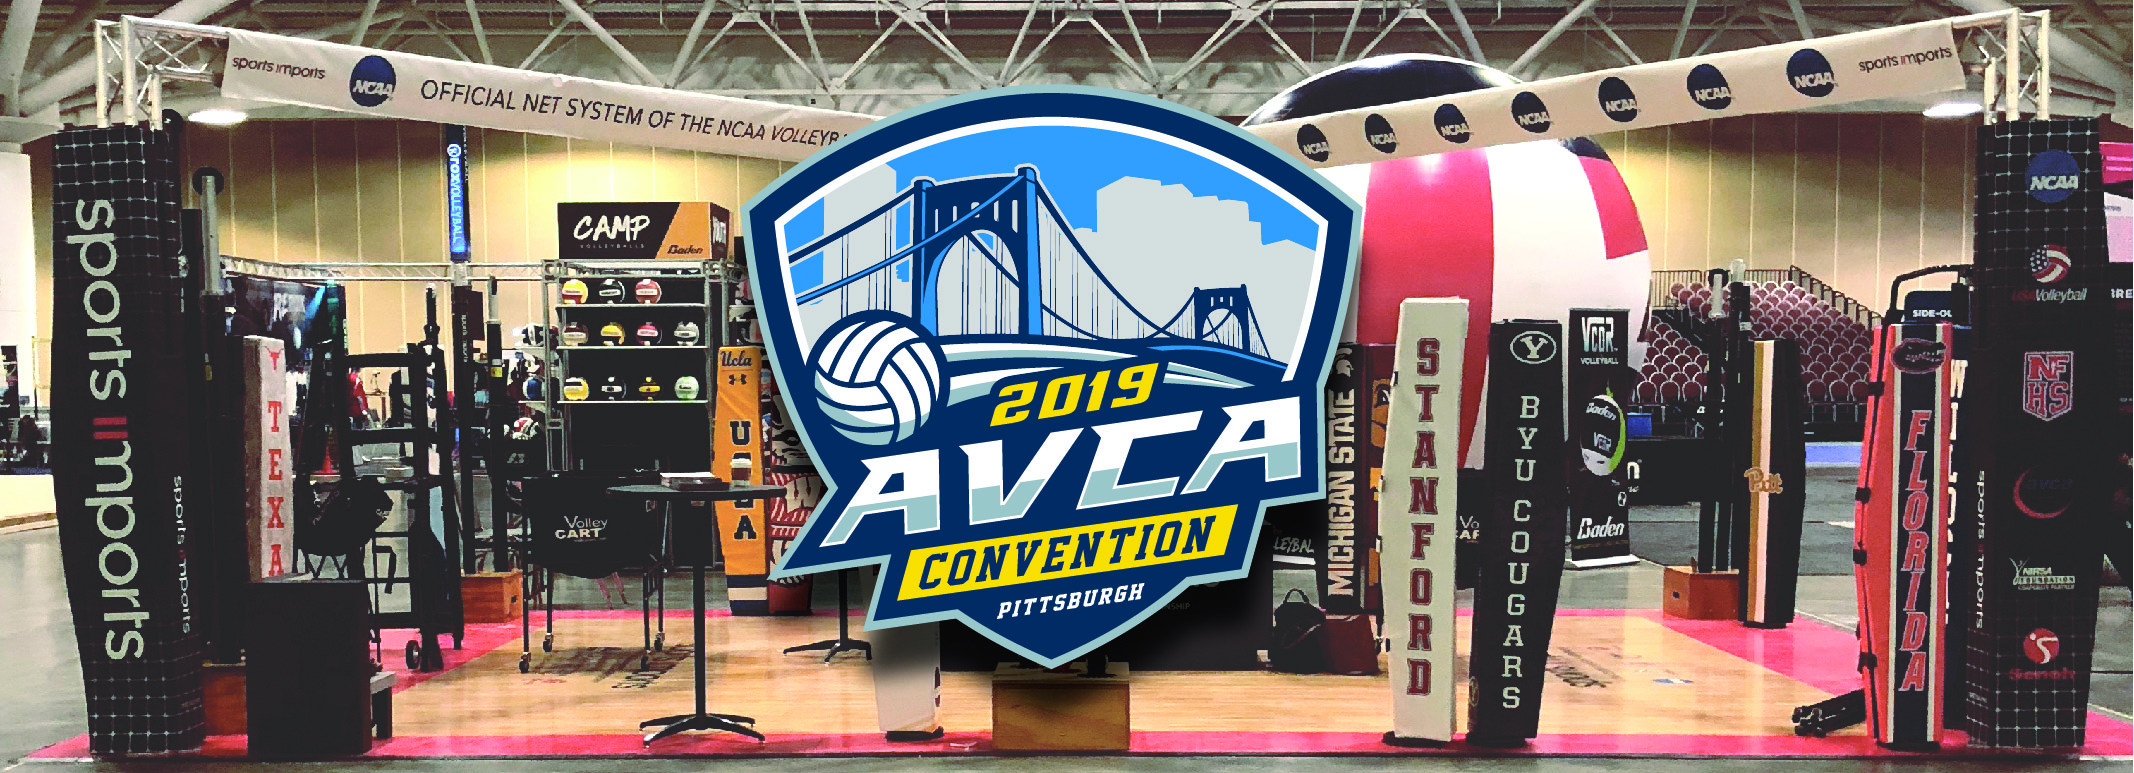 AVCA Volleyball Convention